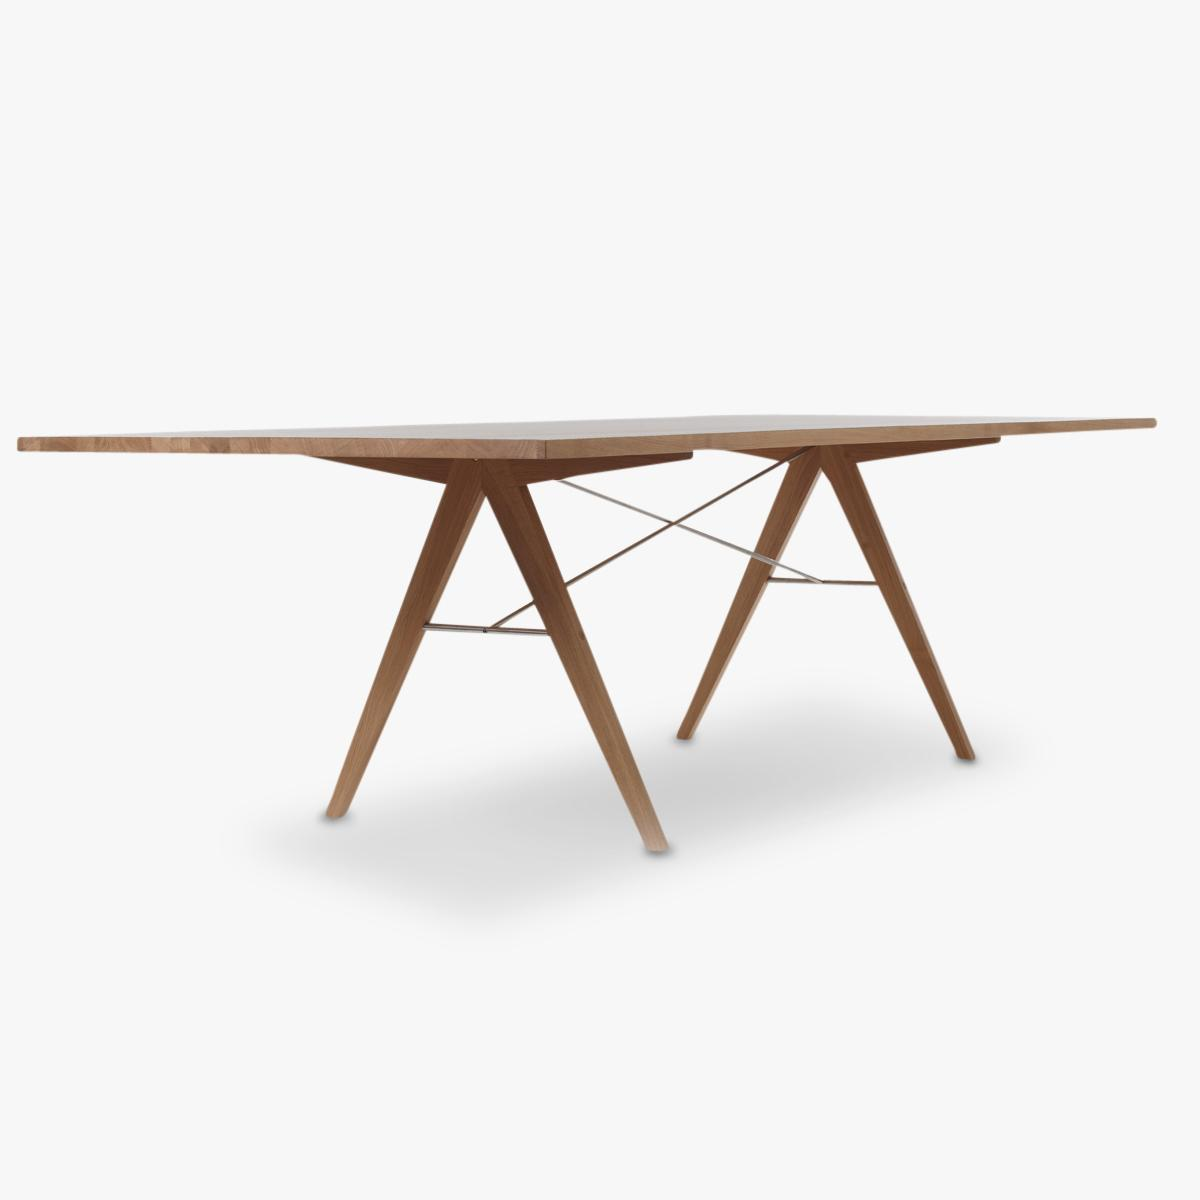 Copenhagen Table Side Angle-1200